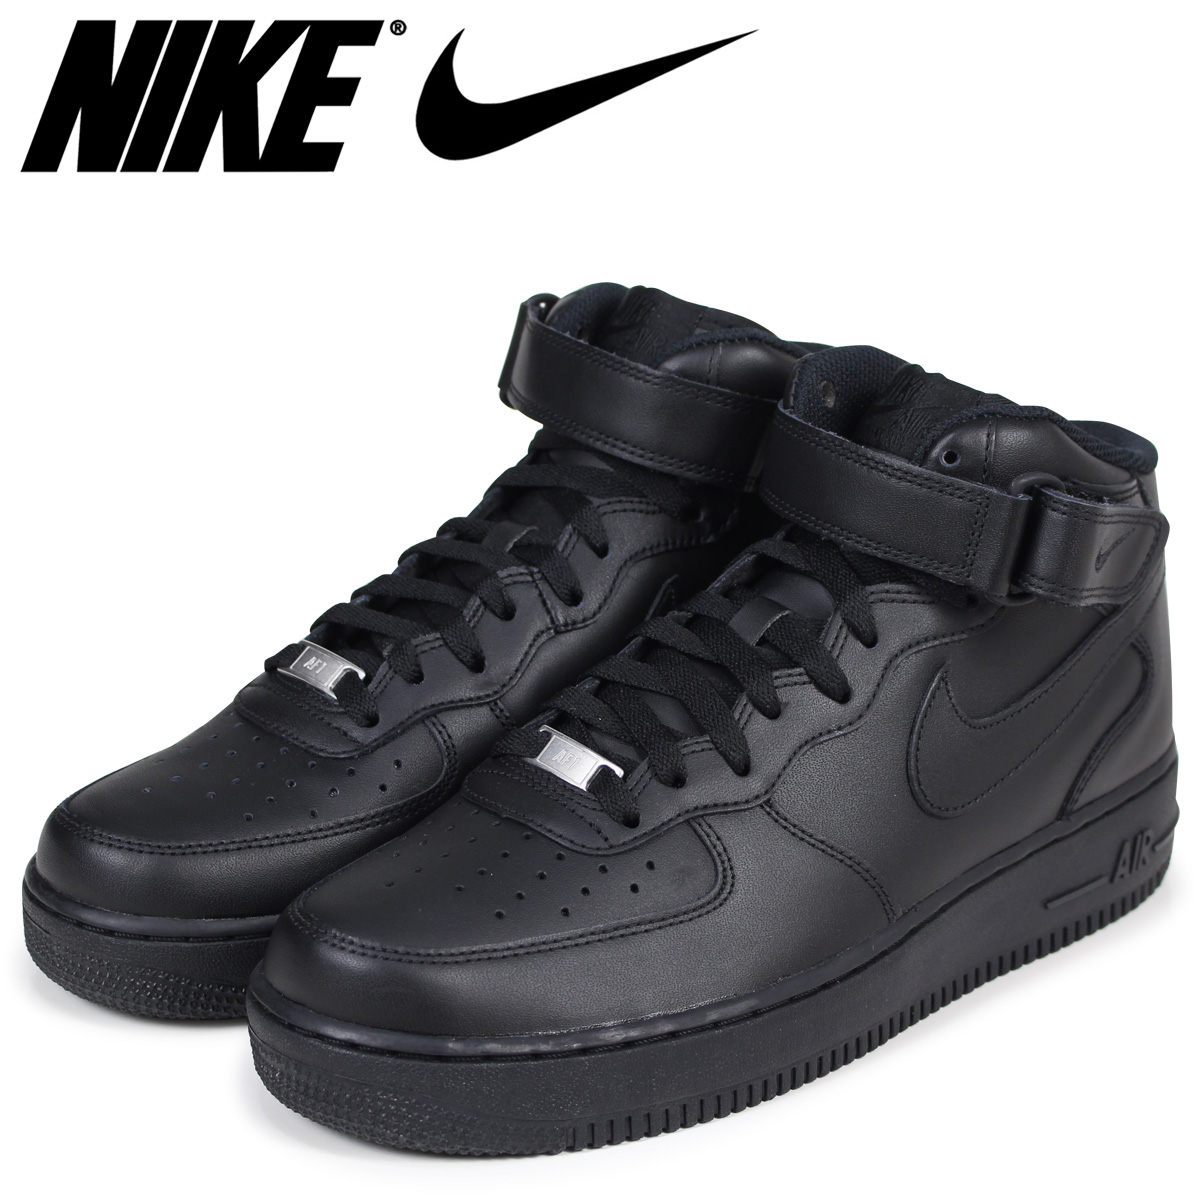 outlet store b90a1 dfad6 NIKE Nike air force 1 MID 07 sneakers men AIR FORCE 1 315,122-001 black   load planned Shinnyu load in reservation product 3 3 containing